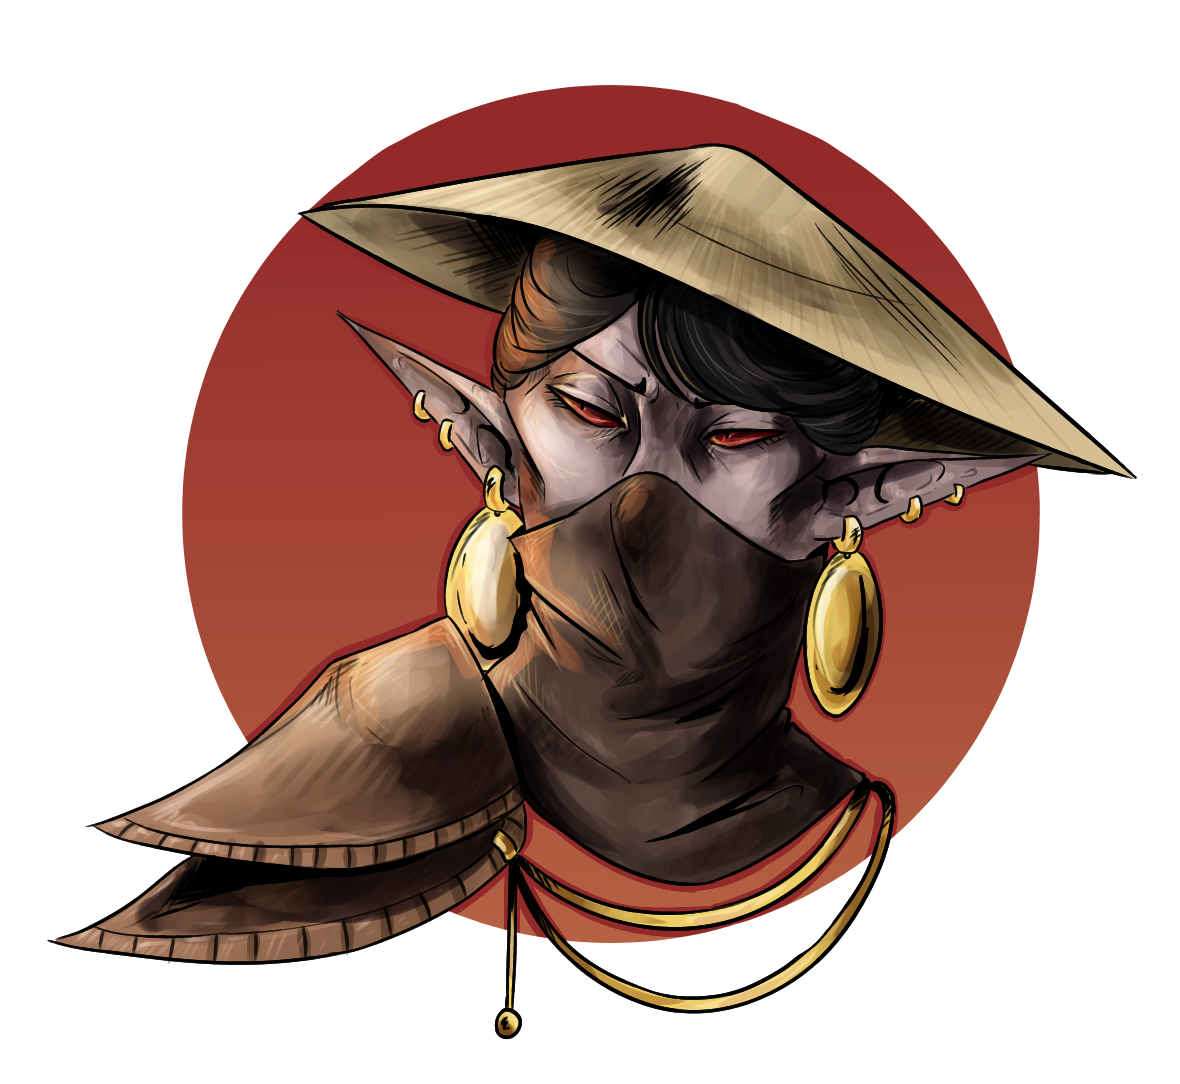 dunmer_by_clockworkcorpse-dc85p4n.png